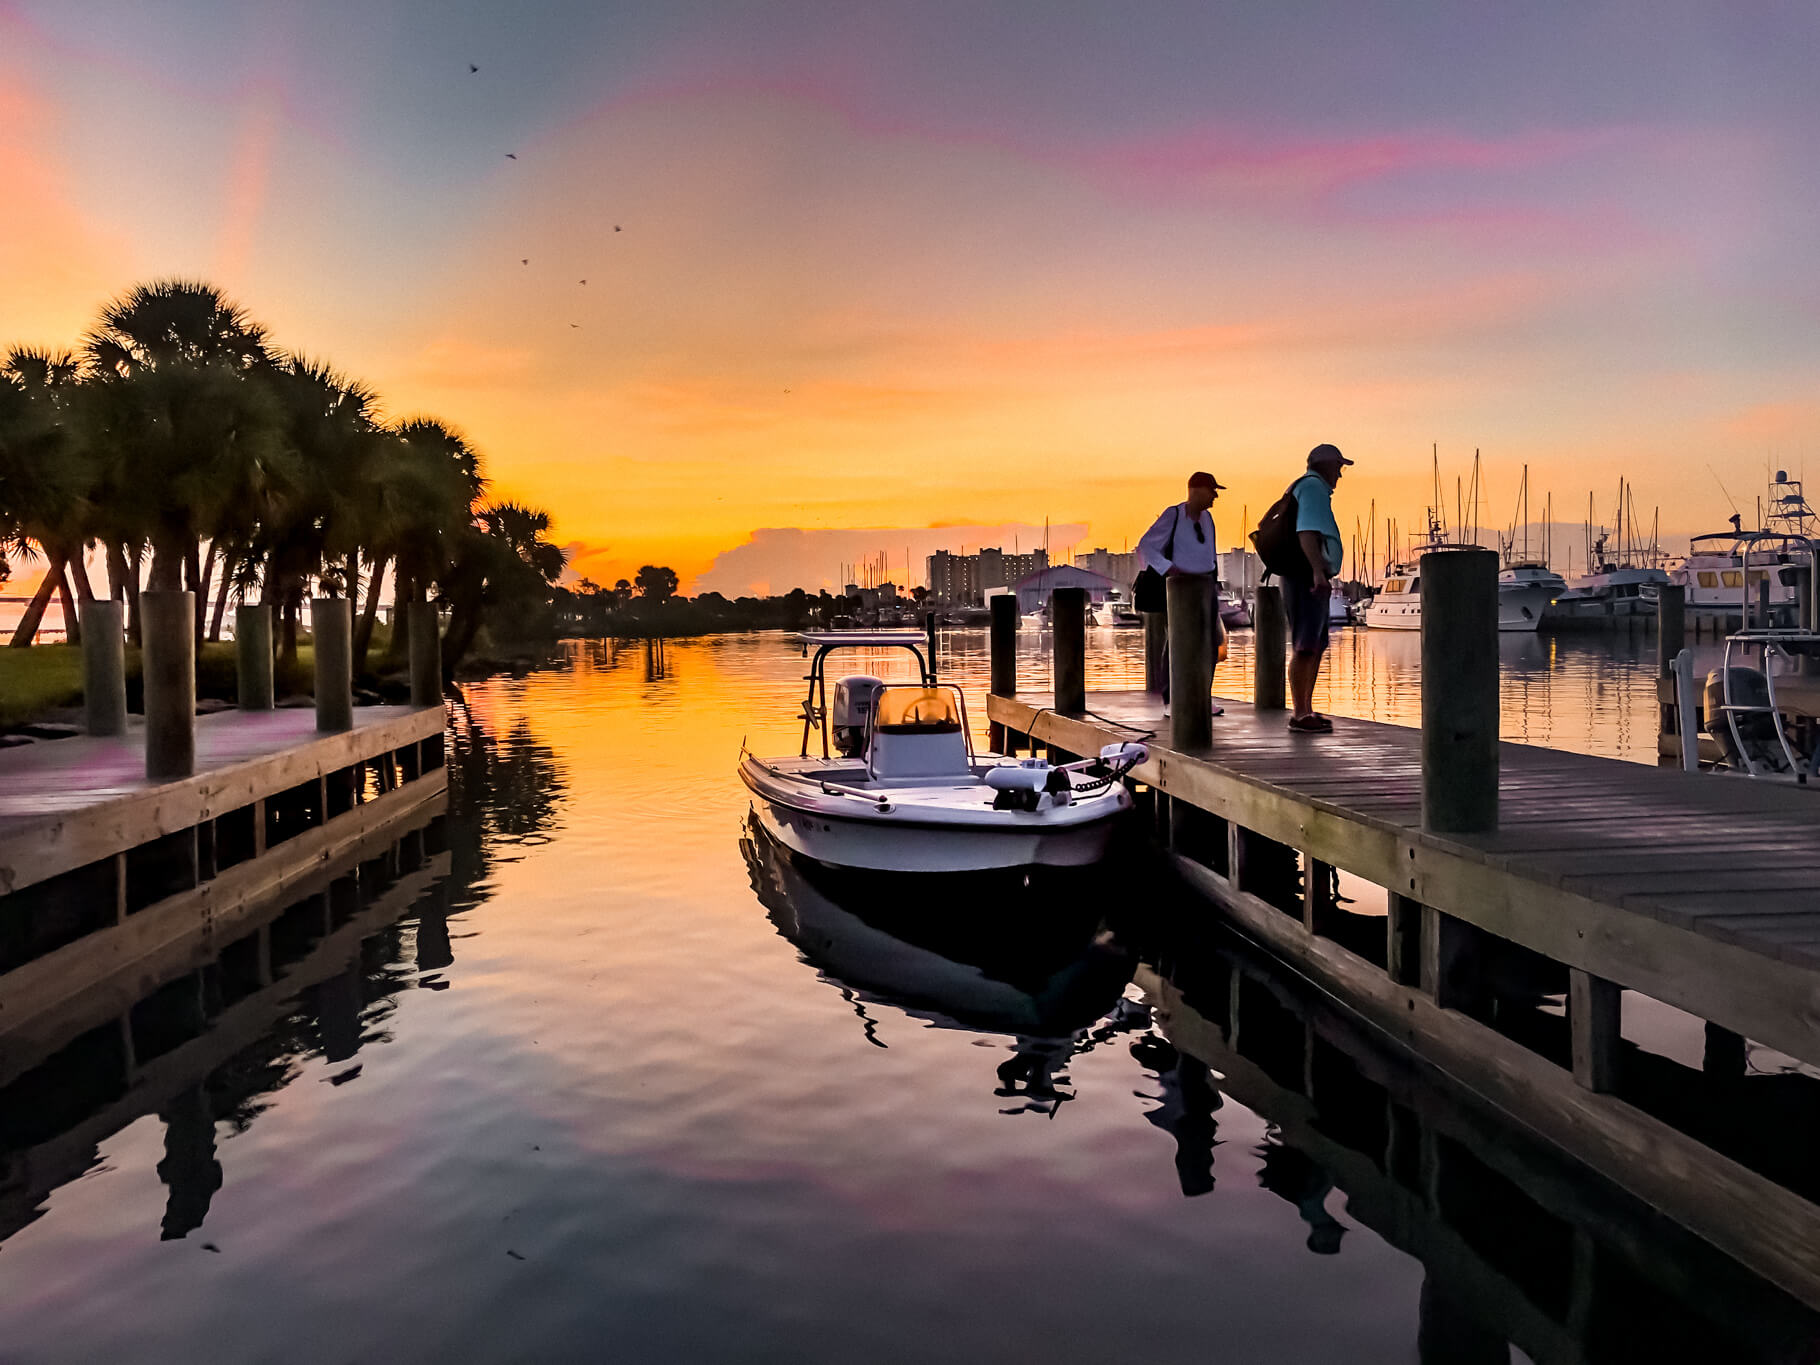 sunrise on the indian river lagoon